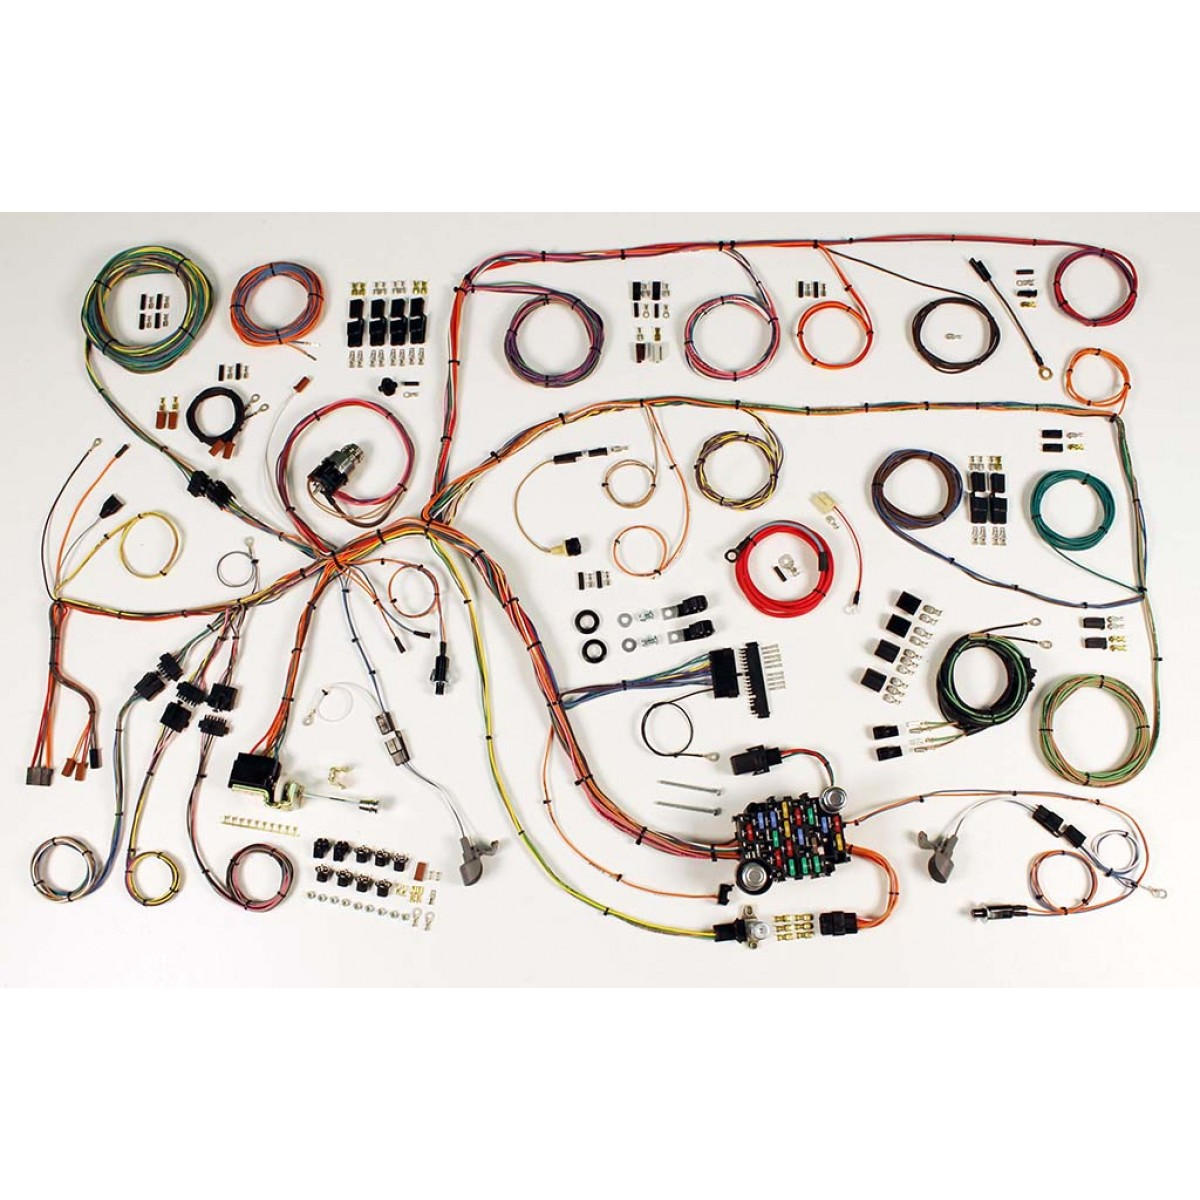 1960 1964 ford falcon complete wiring harness kit 1960 1964 ford rh code510 com 1964 ford thunderbird wiring harness Ford OEM Wiring Harness